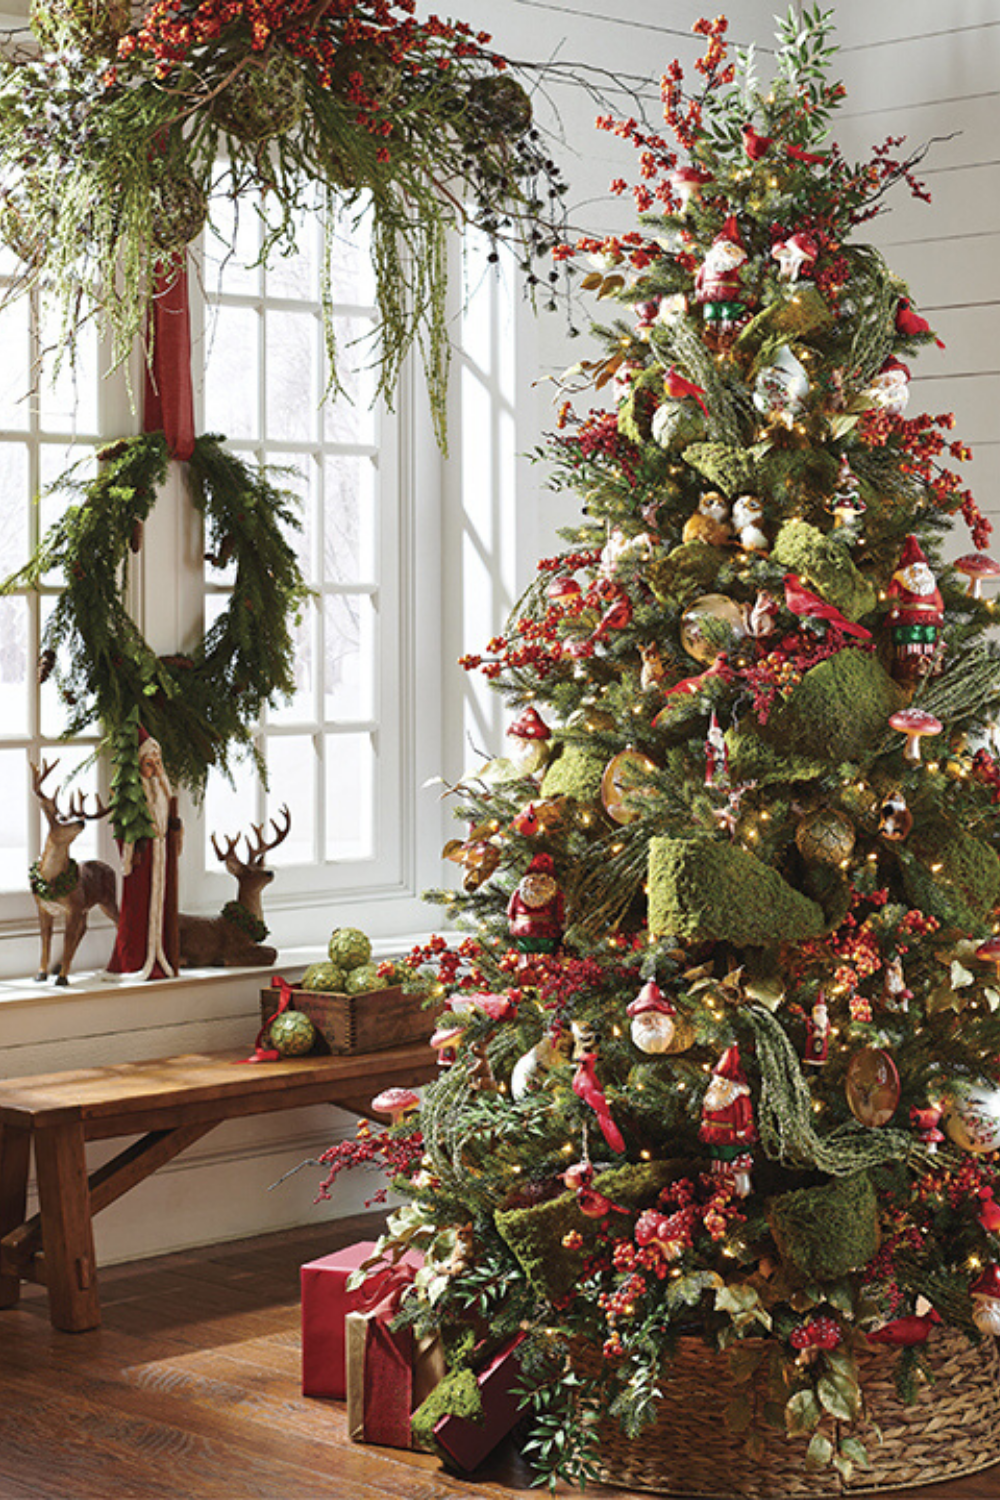 Up Shipping And Returns Refund Policy Terms Of Service Privacy Policy Copyright C 2020 Trendy Tree In 2020 Woodland Christmas Decor Red Christmas Decor Christmas Lodge